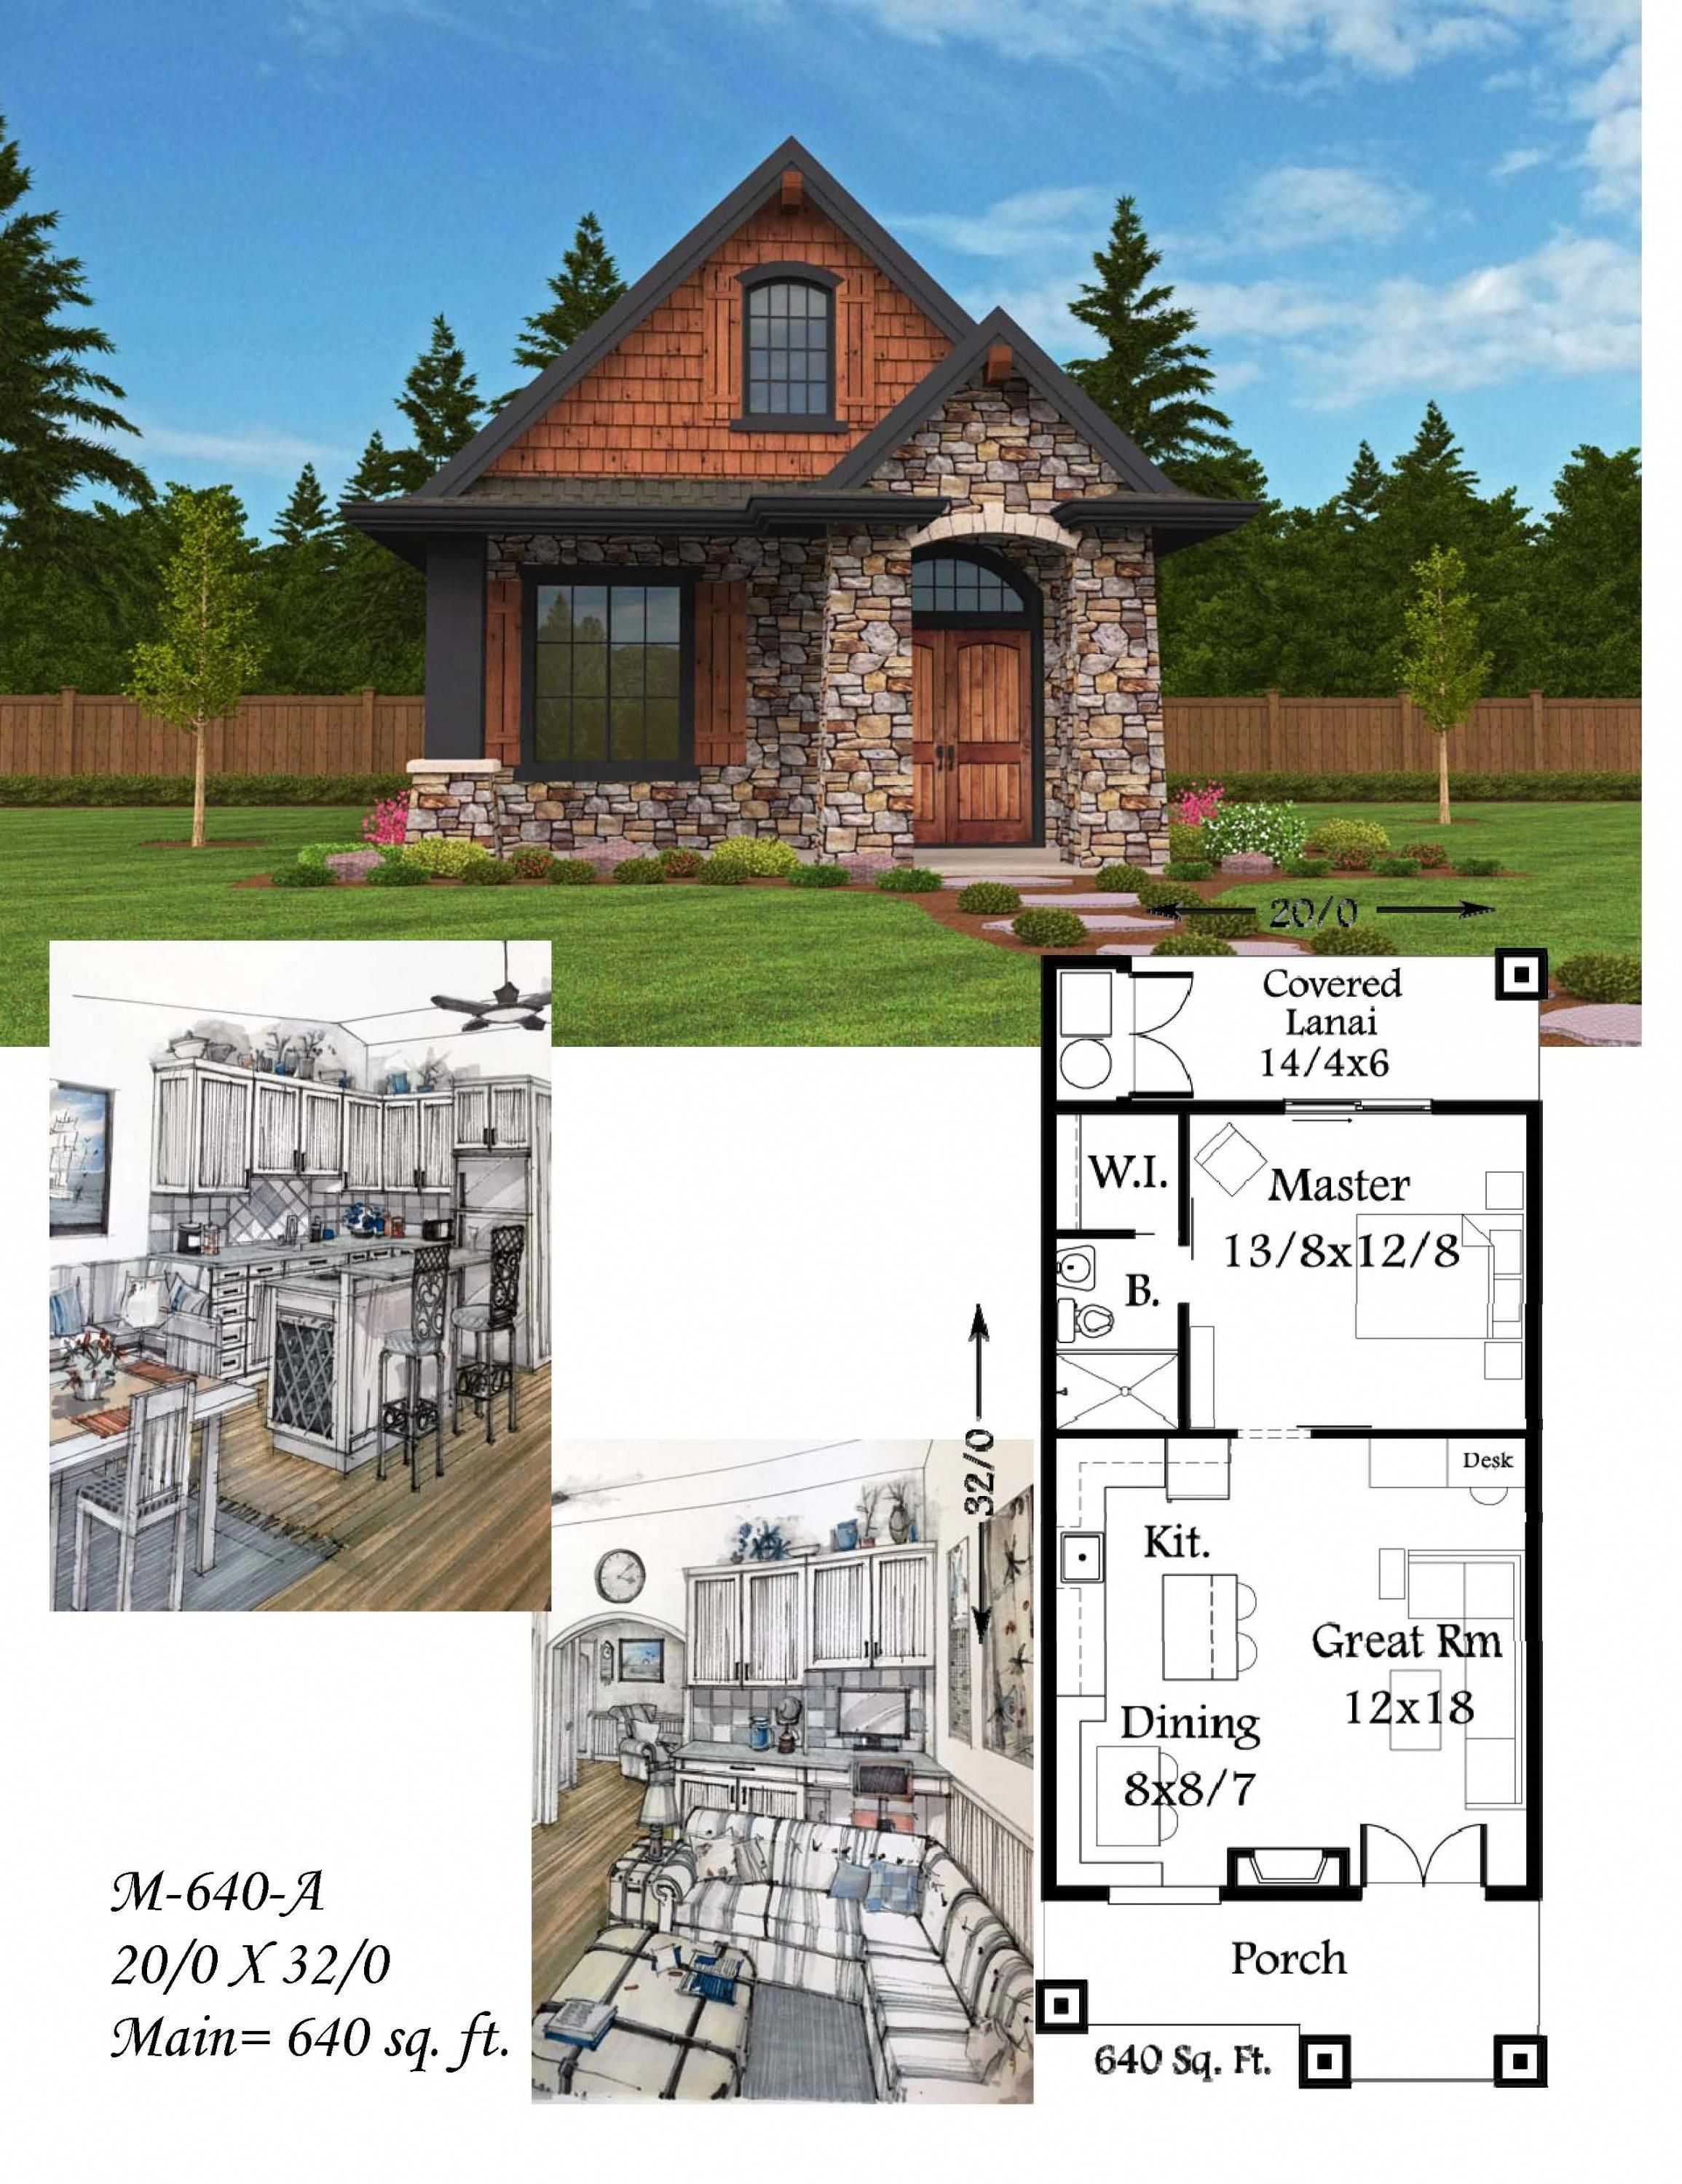 Montana House Plan Bungalow Casita Style Cottage Country Craftsman French Country Lodge Old World Cottage House Plans Small Home Plan Tiny House Plans